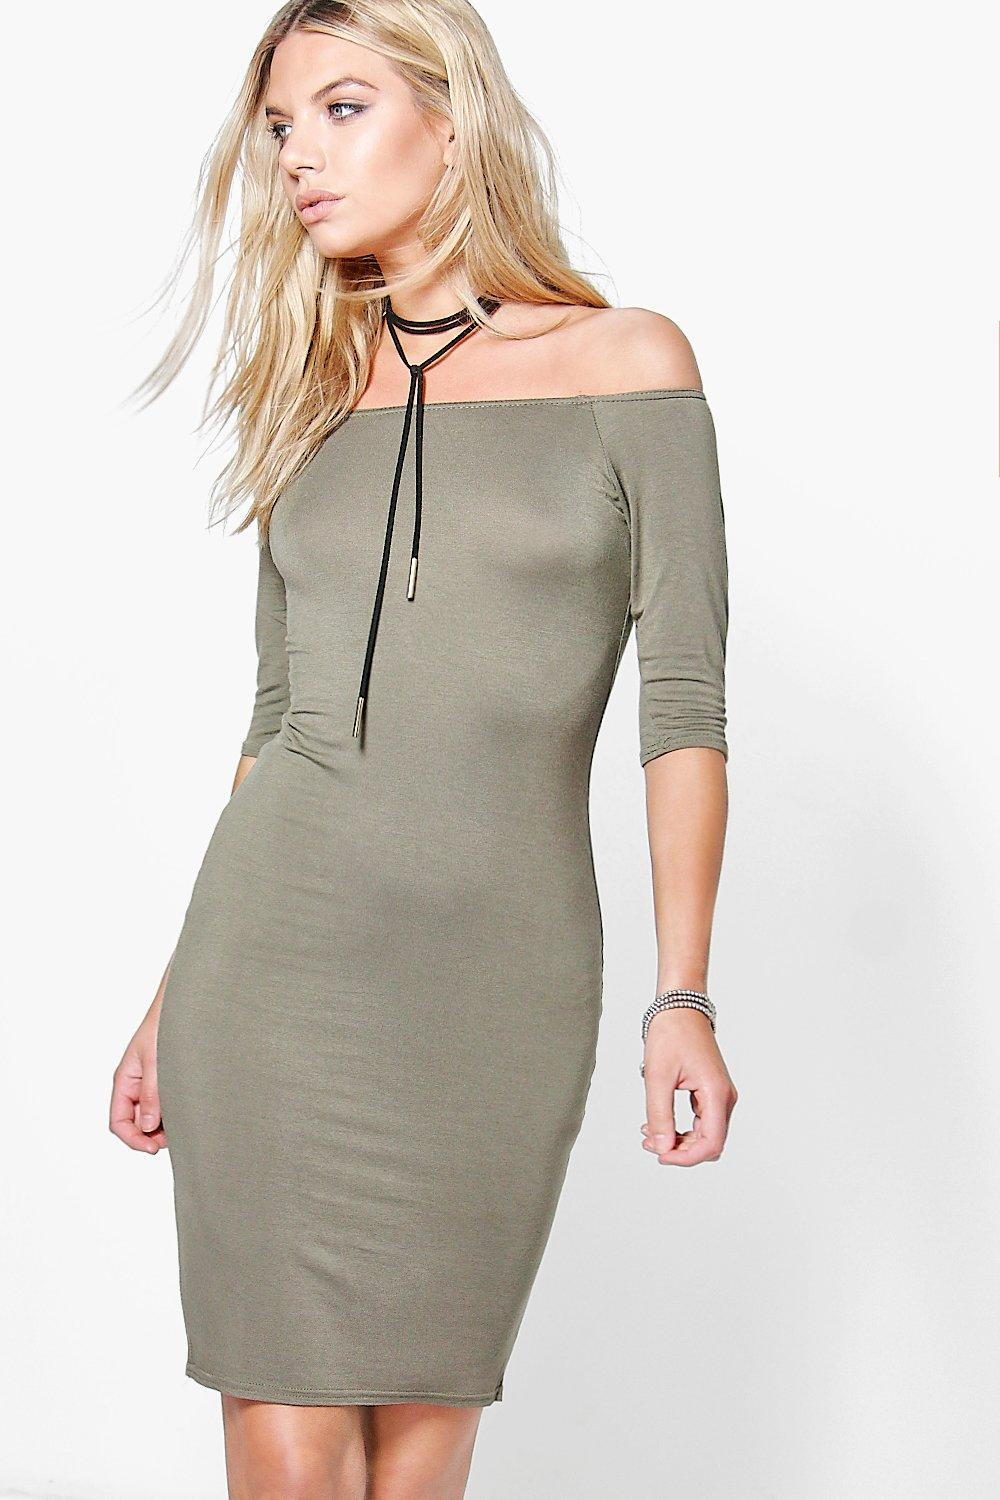 Sonia Summer 3/4 Sleeve Bodycon Dress